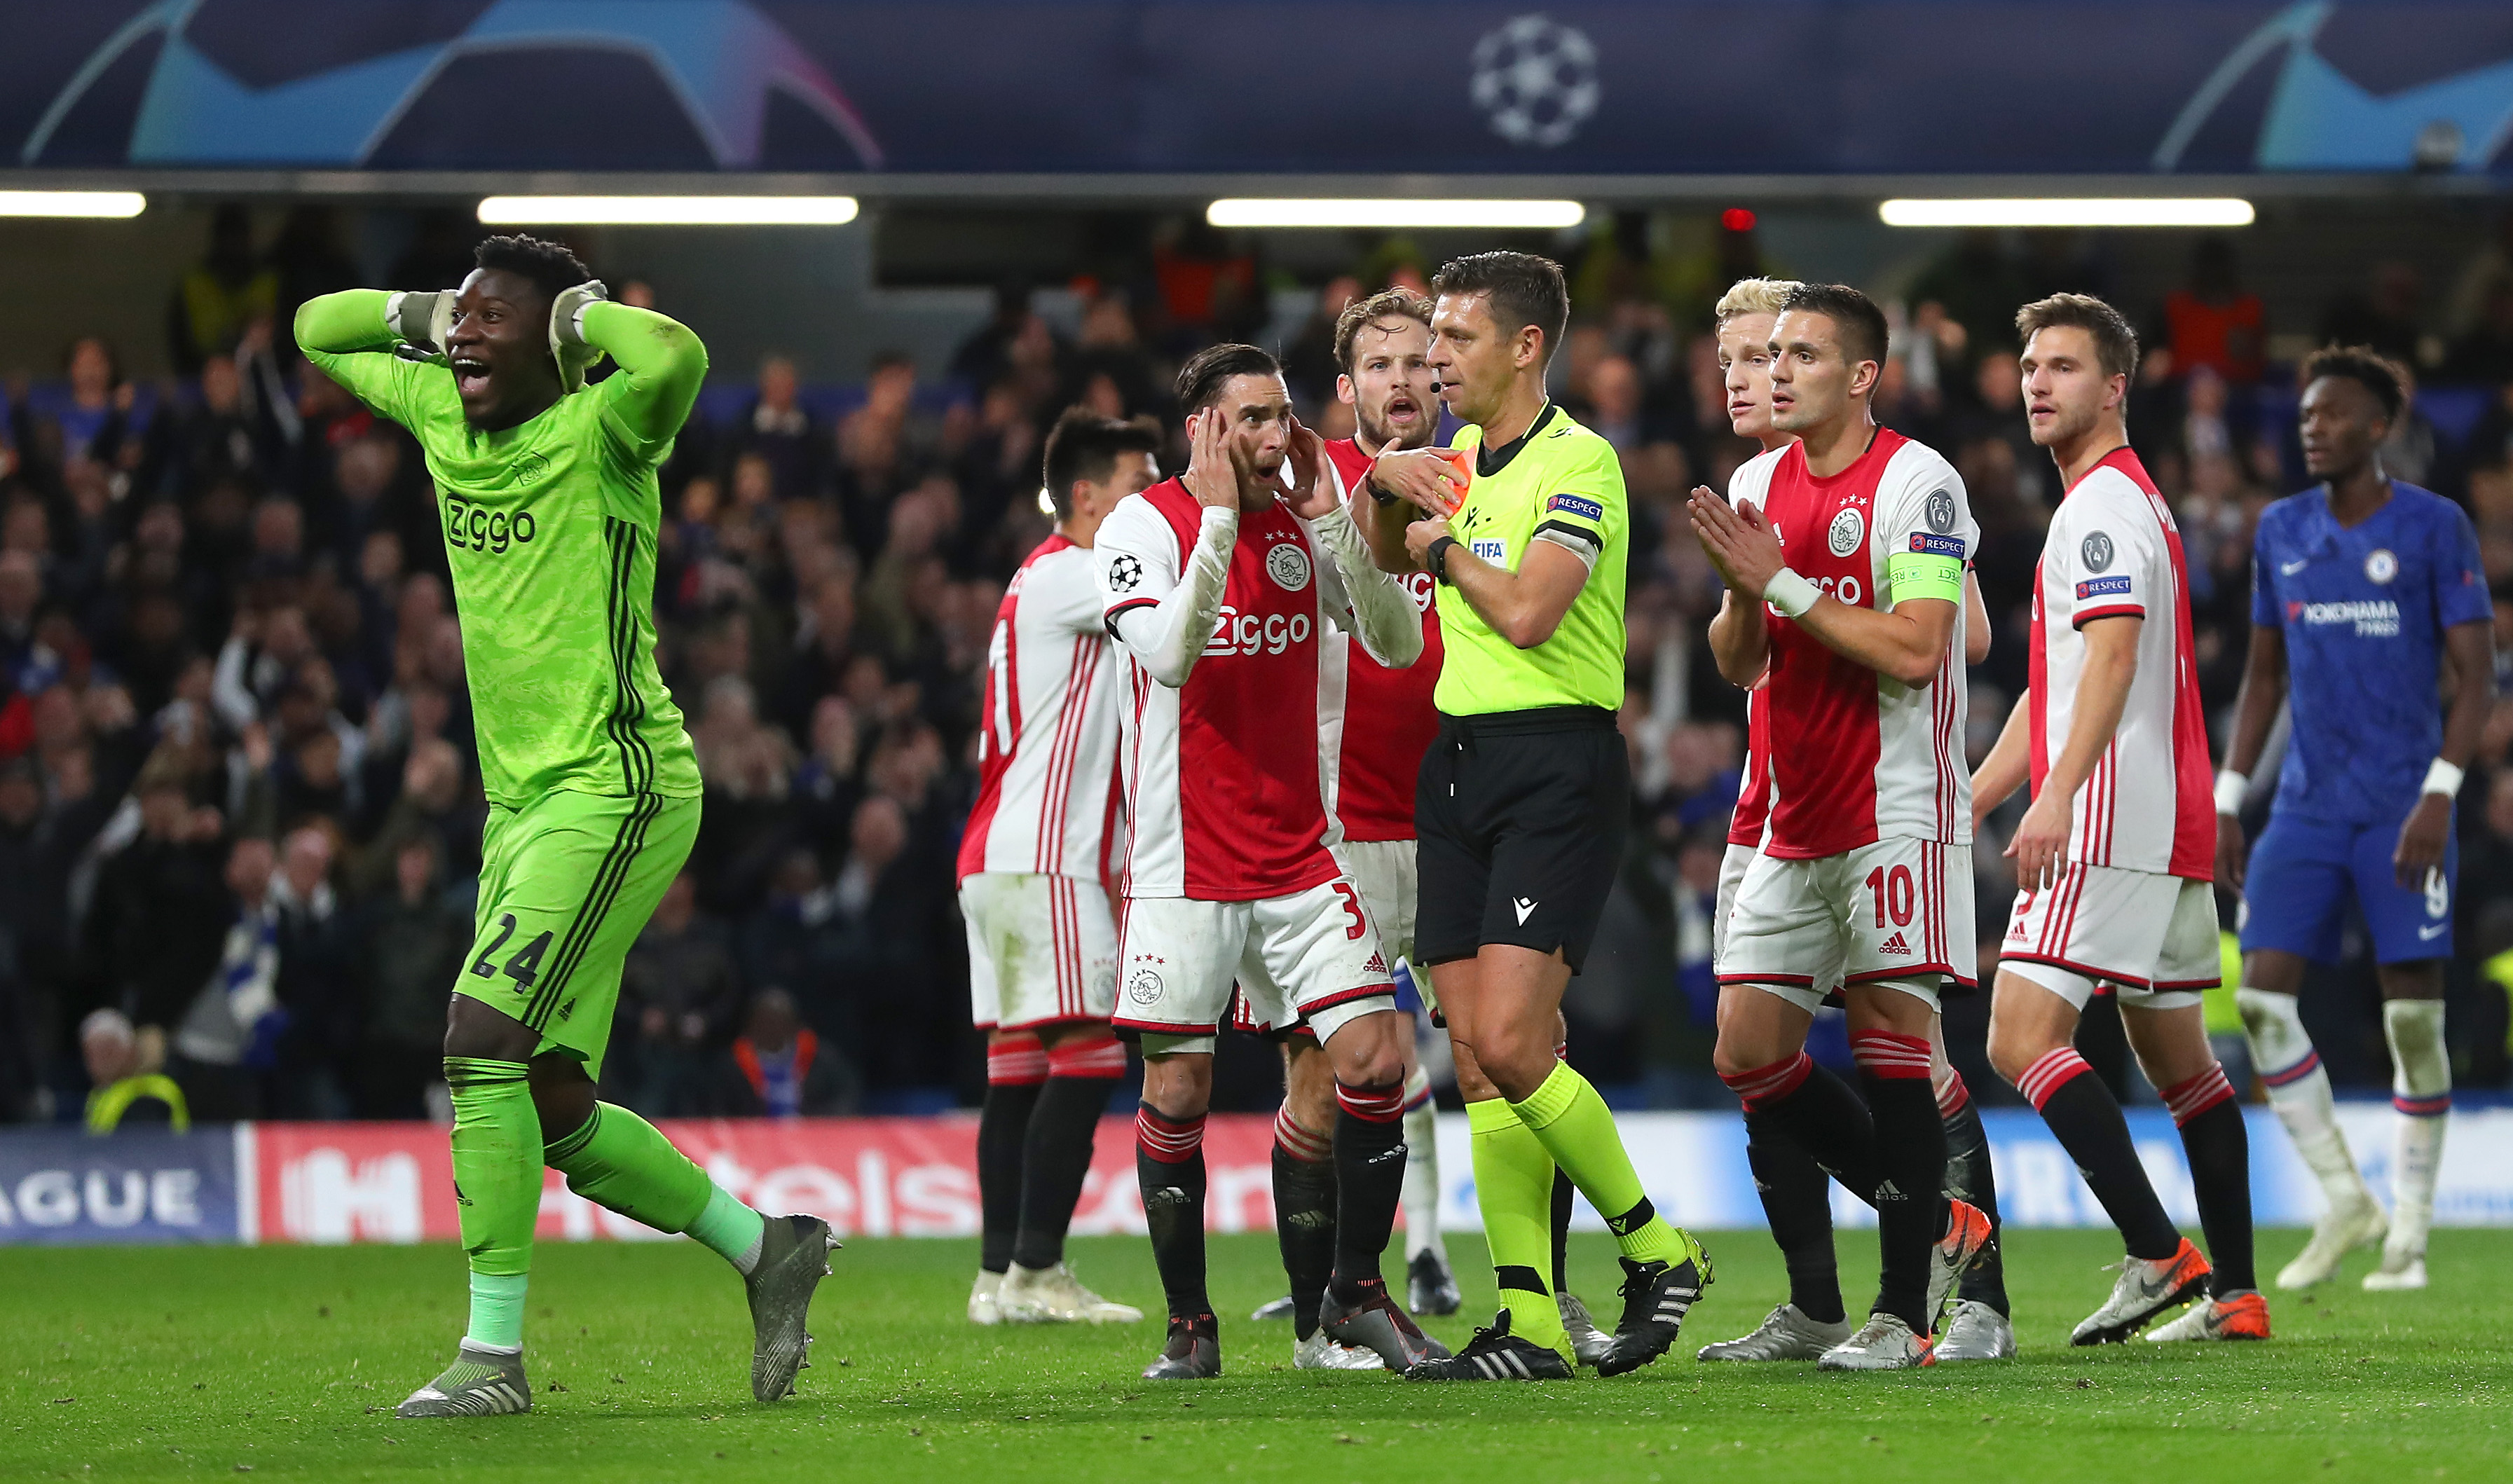 Andre Onana and Dusan Tadic of Ajax react after two red cards are given against their side.